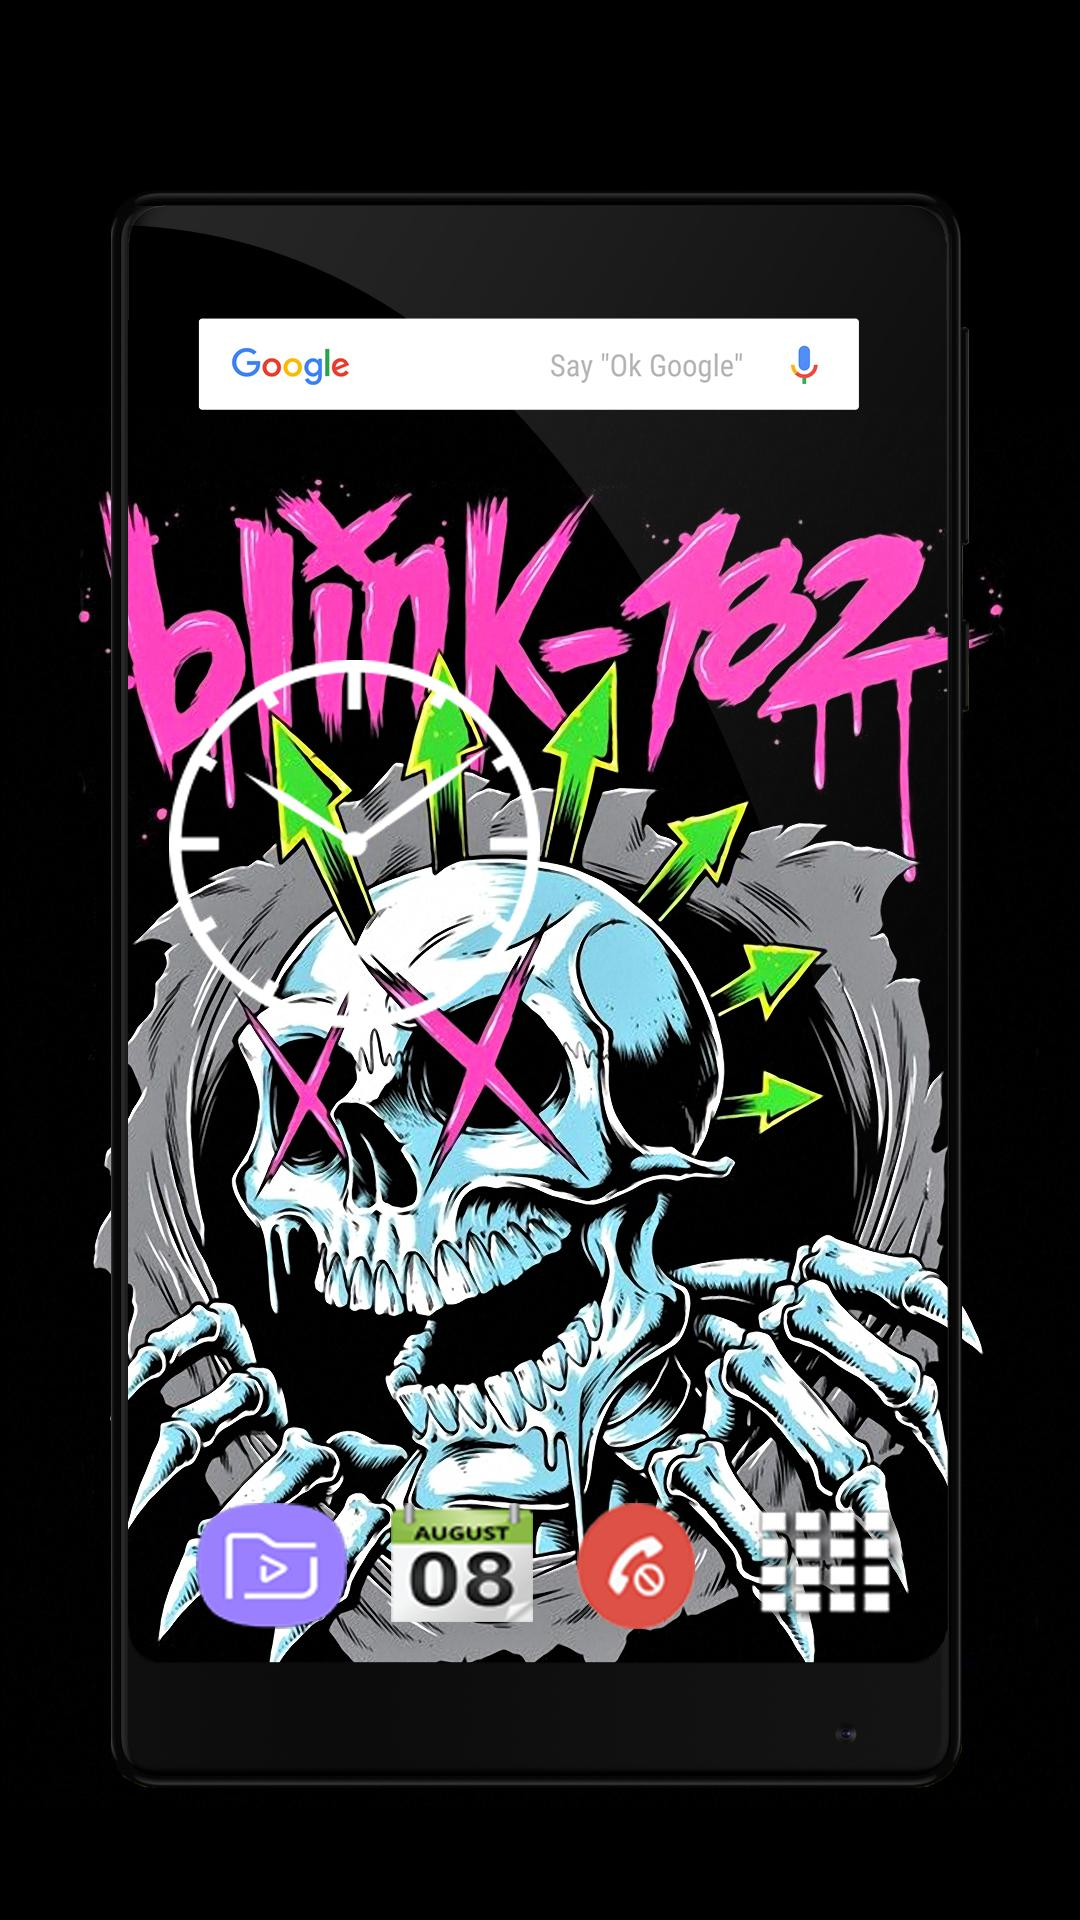 Blink 182 Wallpaper for Android   APK Download 1080x1920